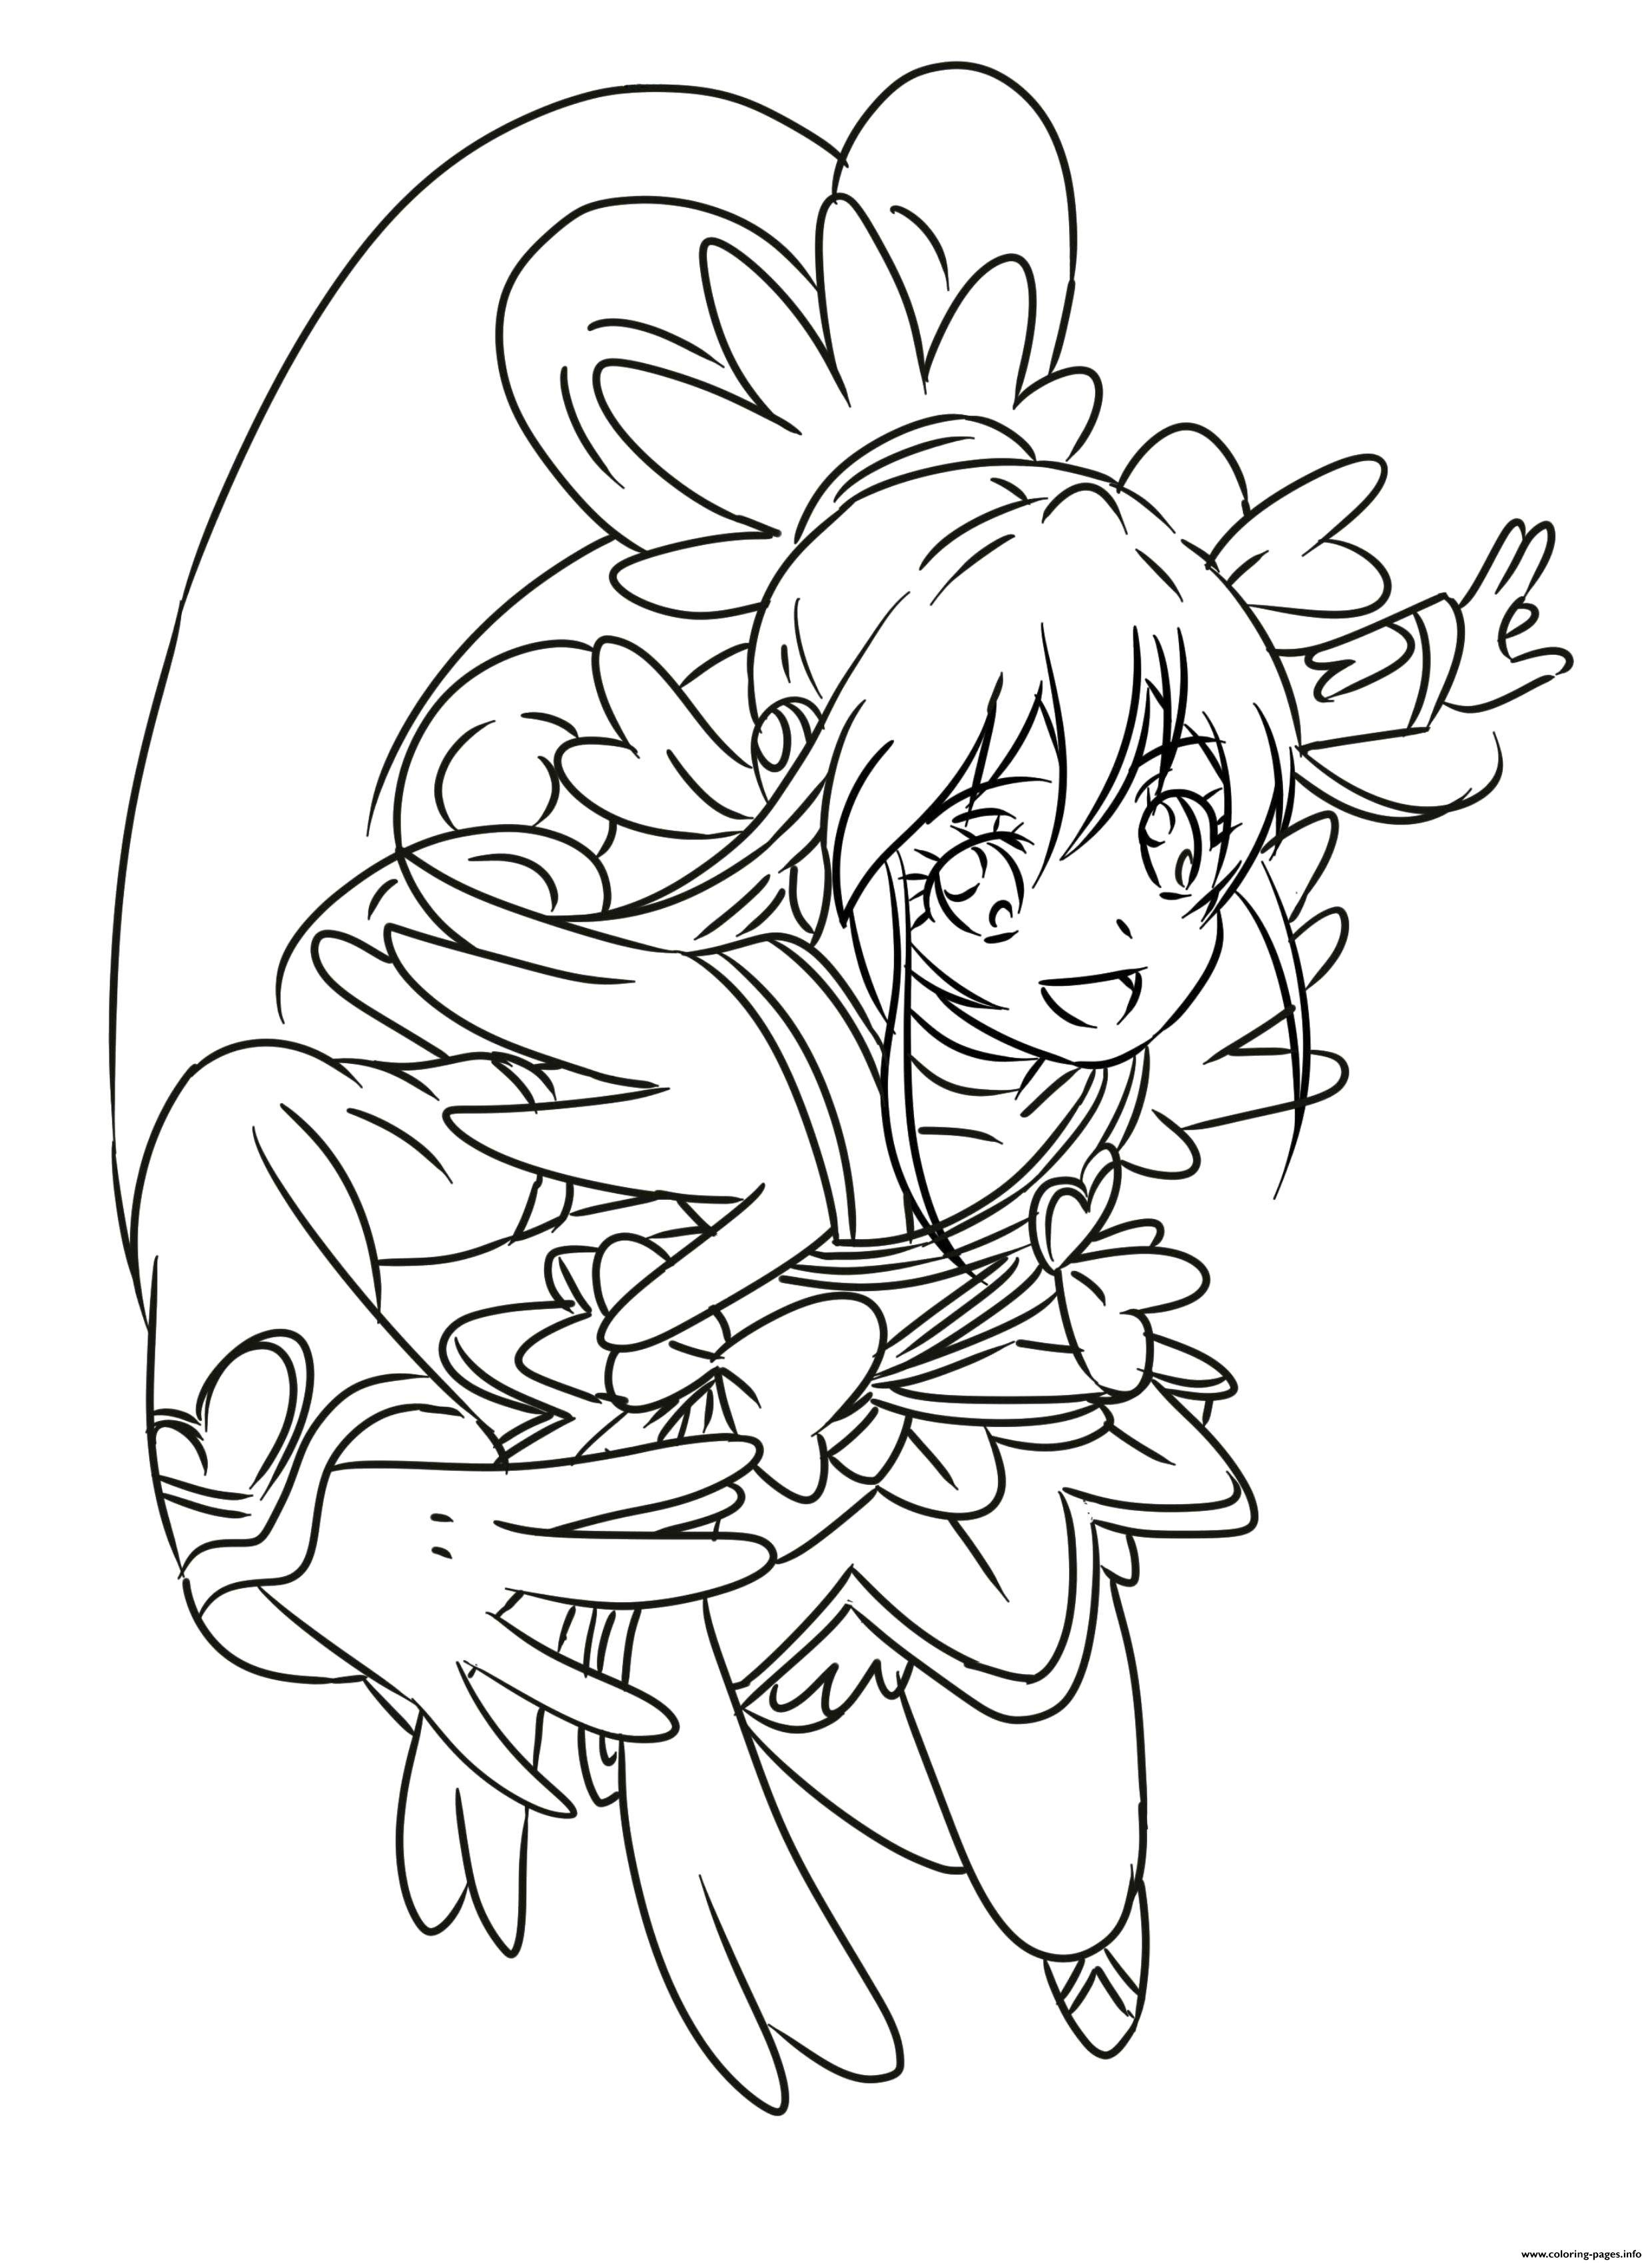 Glitter Force Coloring Pages Cure Heart Precure Glitter Force Coloring Pages Printable